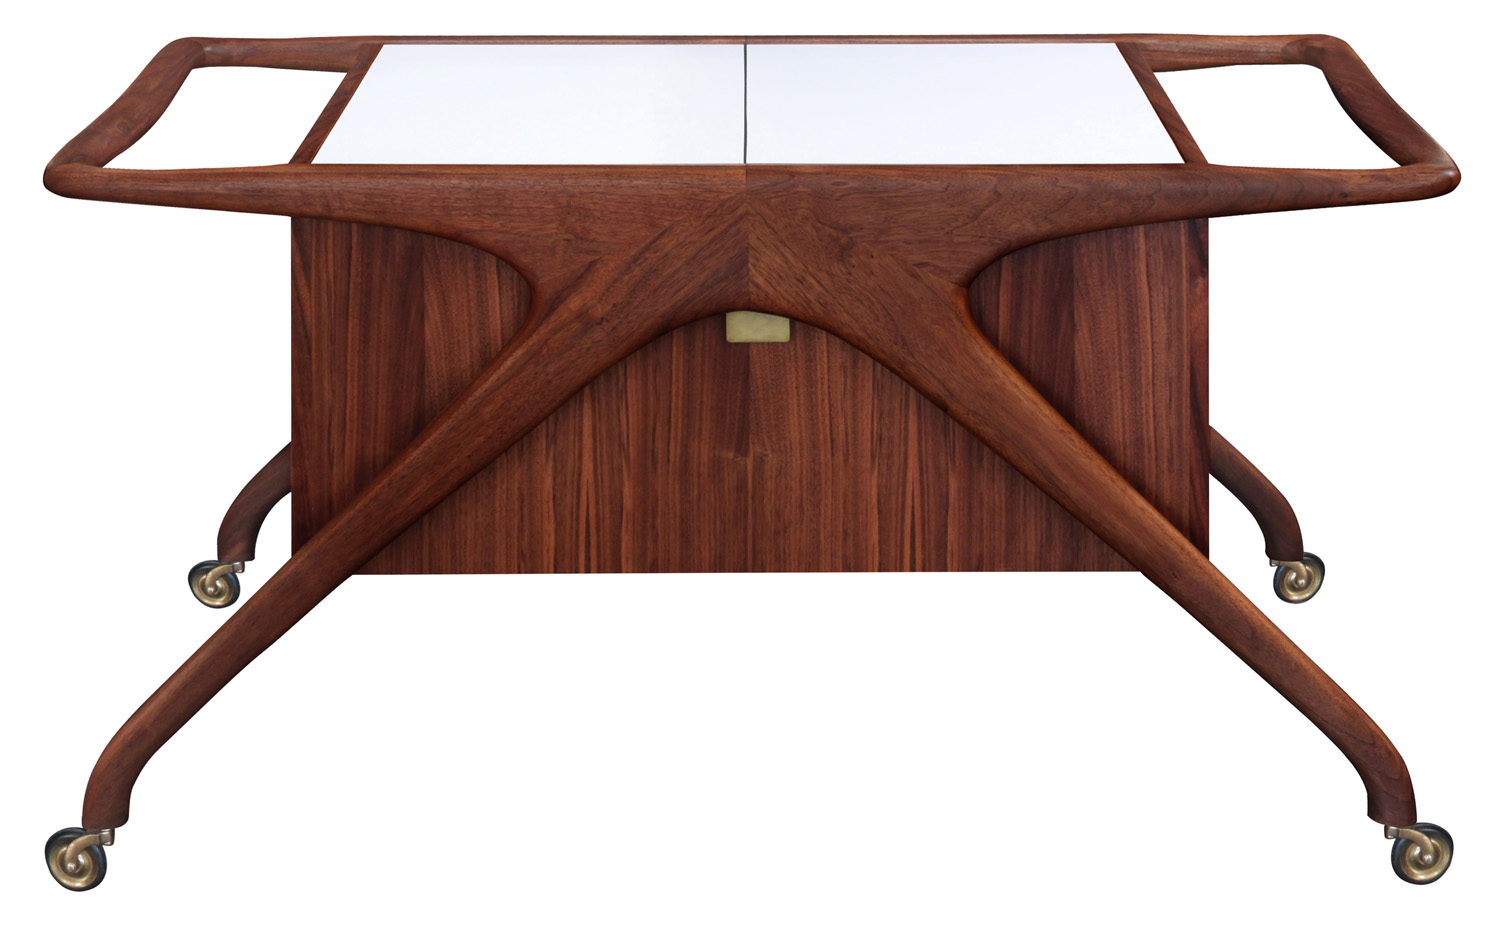 Kagan 120 walnut+white laminate servingcart20 detail1 hires.jpg